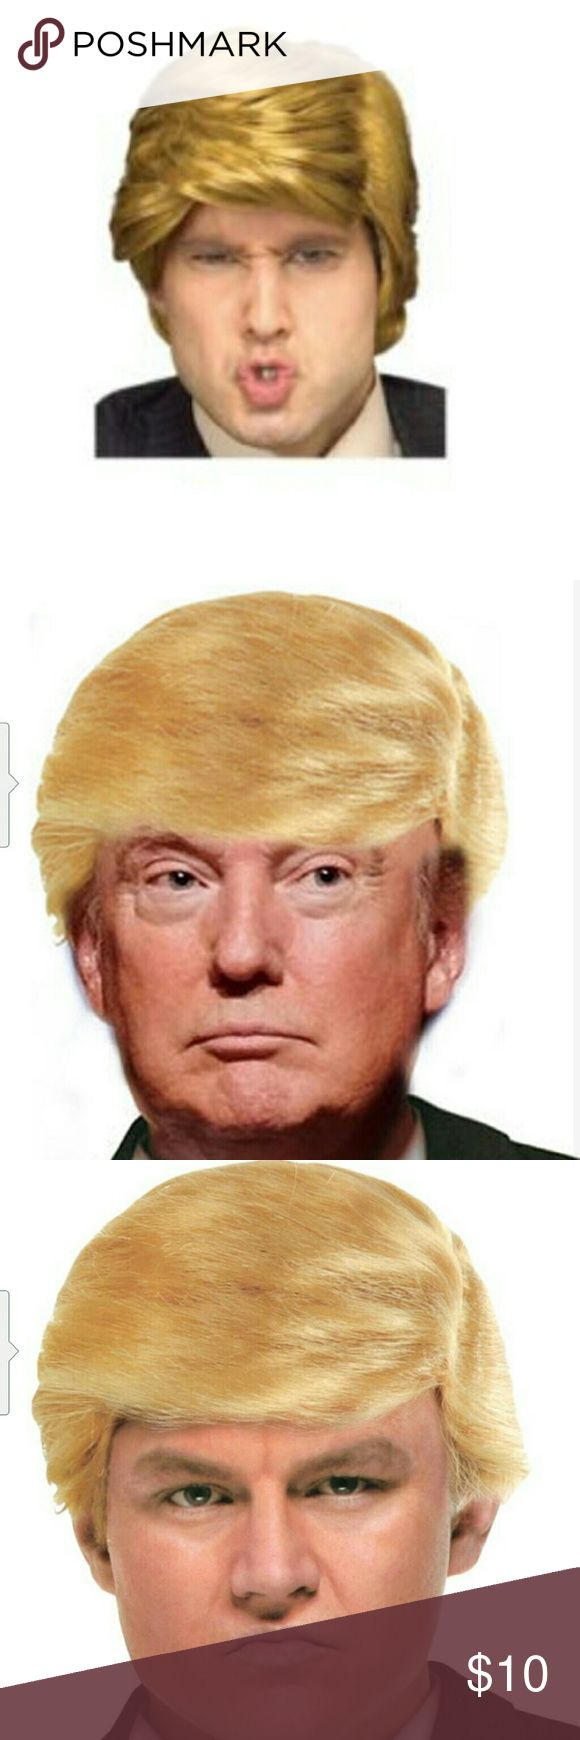 Donald Trump Wig Comb Over Donald Trump Wig Comb Over Accessories Hair Accessories